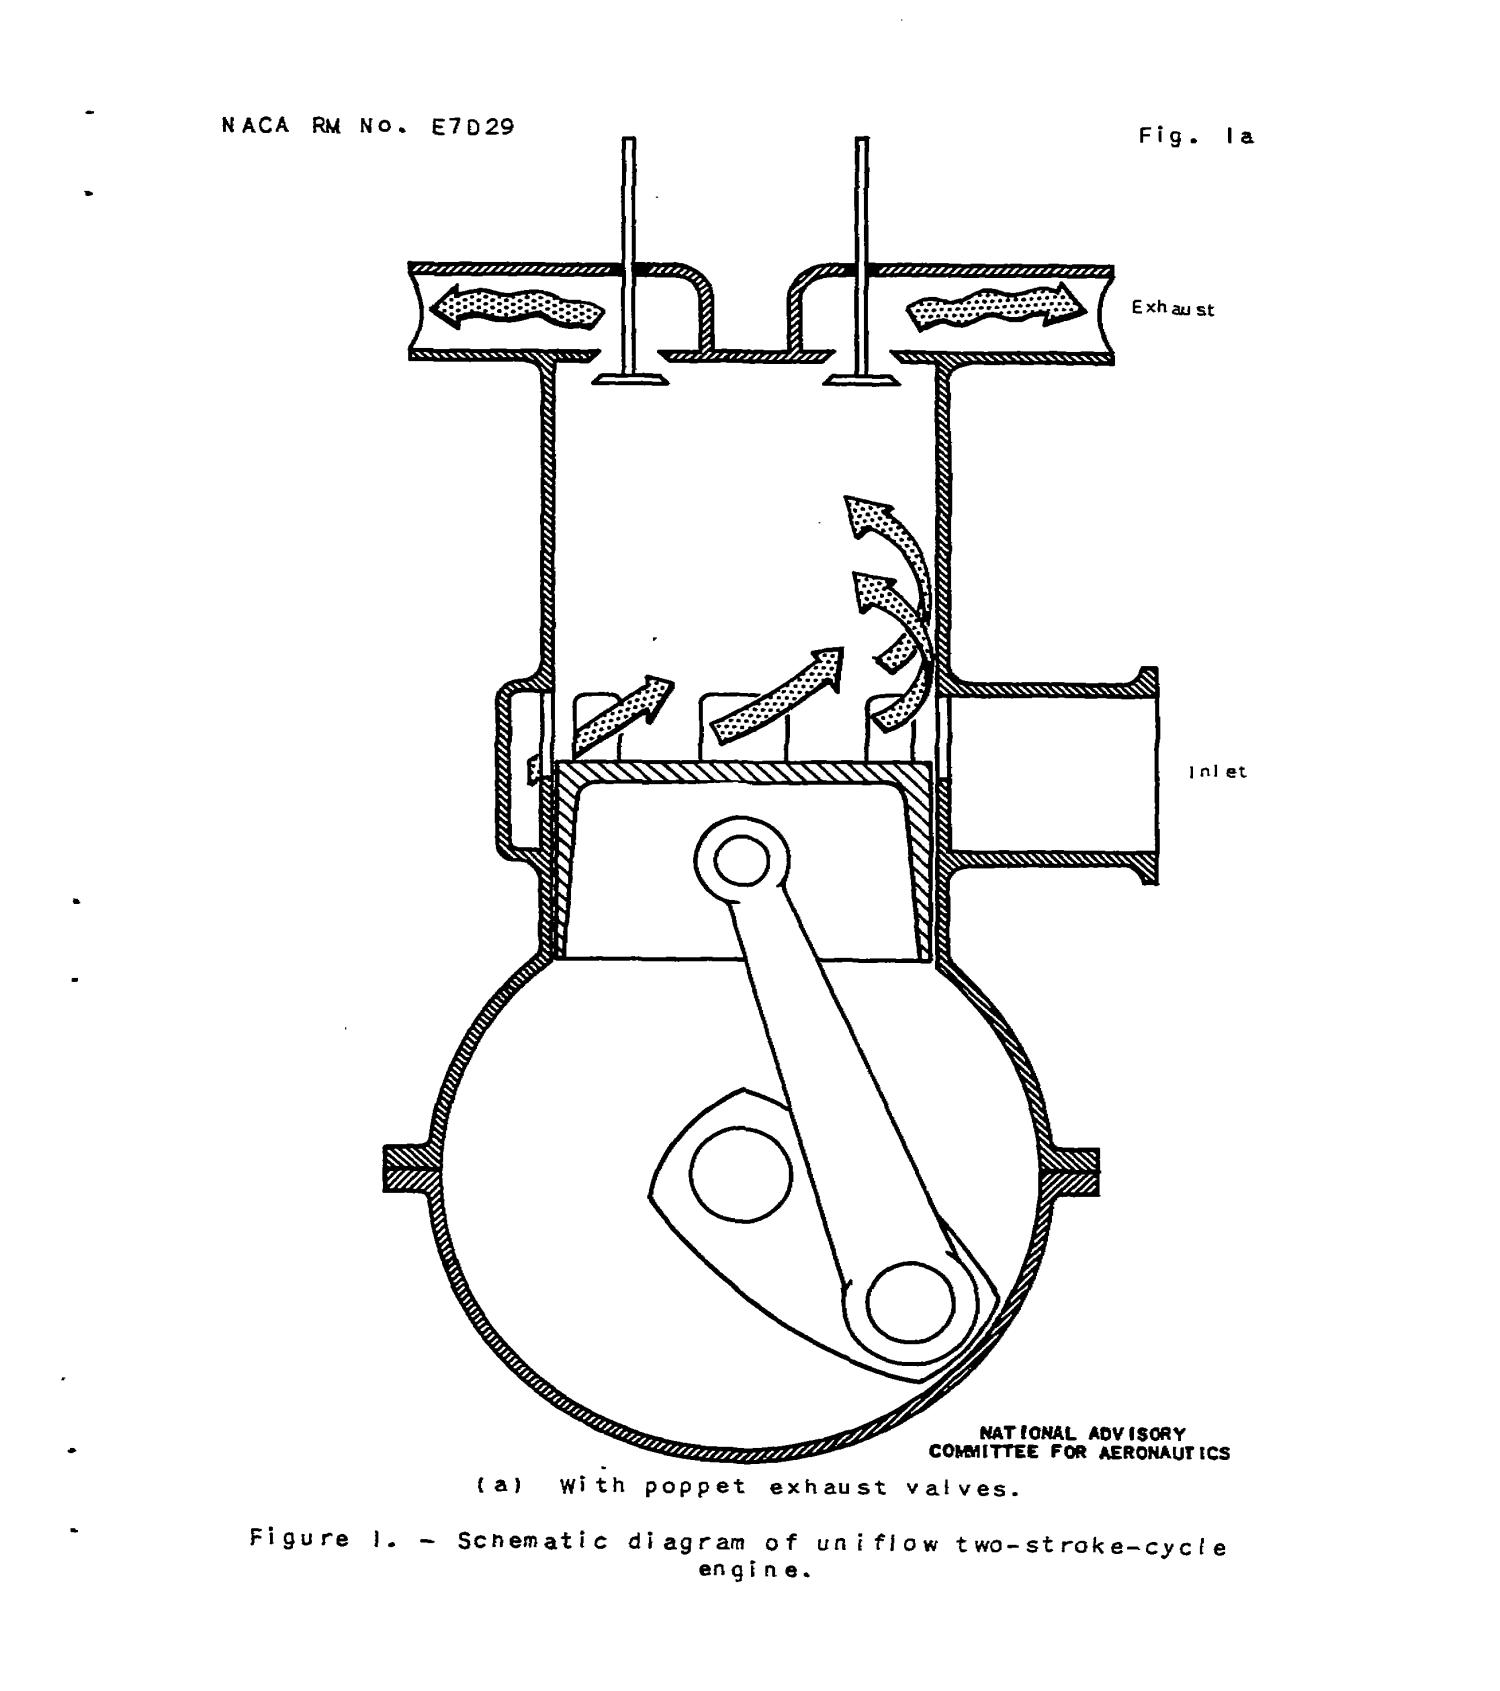 hight resolution of preliminary evaluation of the performance of a uniflow two stroke cycle spark ignition engine combined with a blowdown turbine and a steady flow turbine